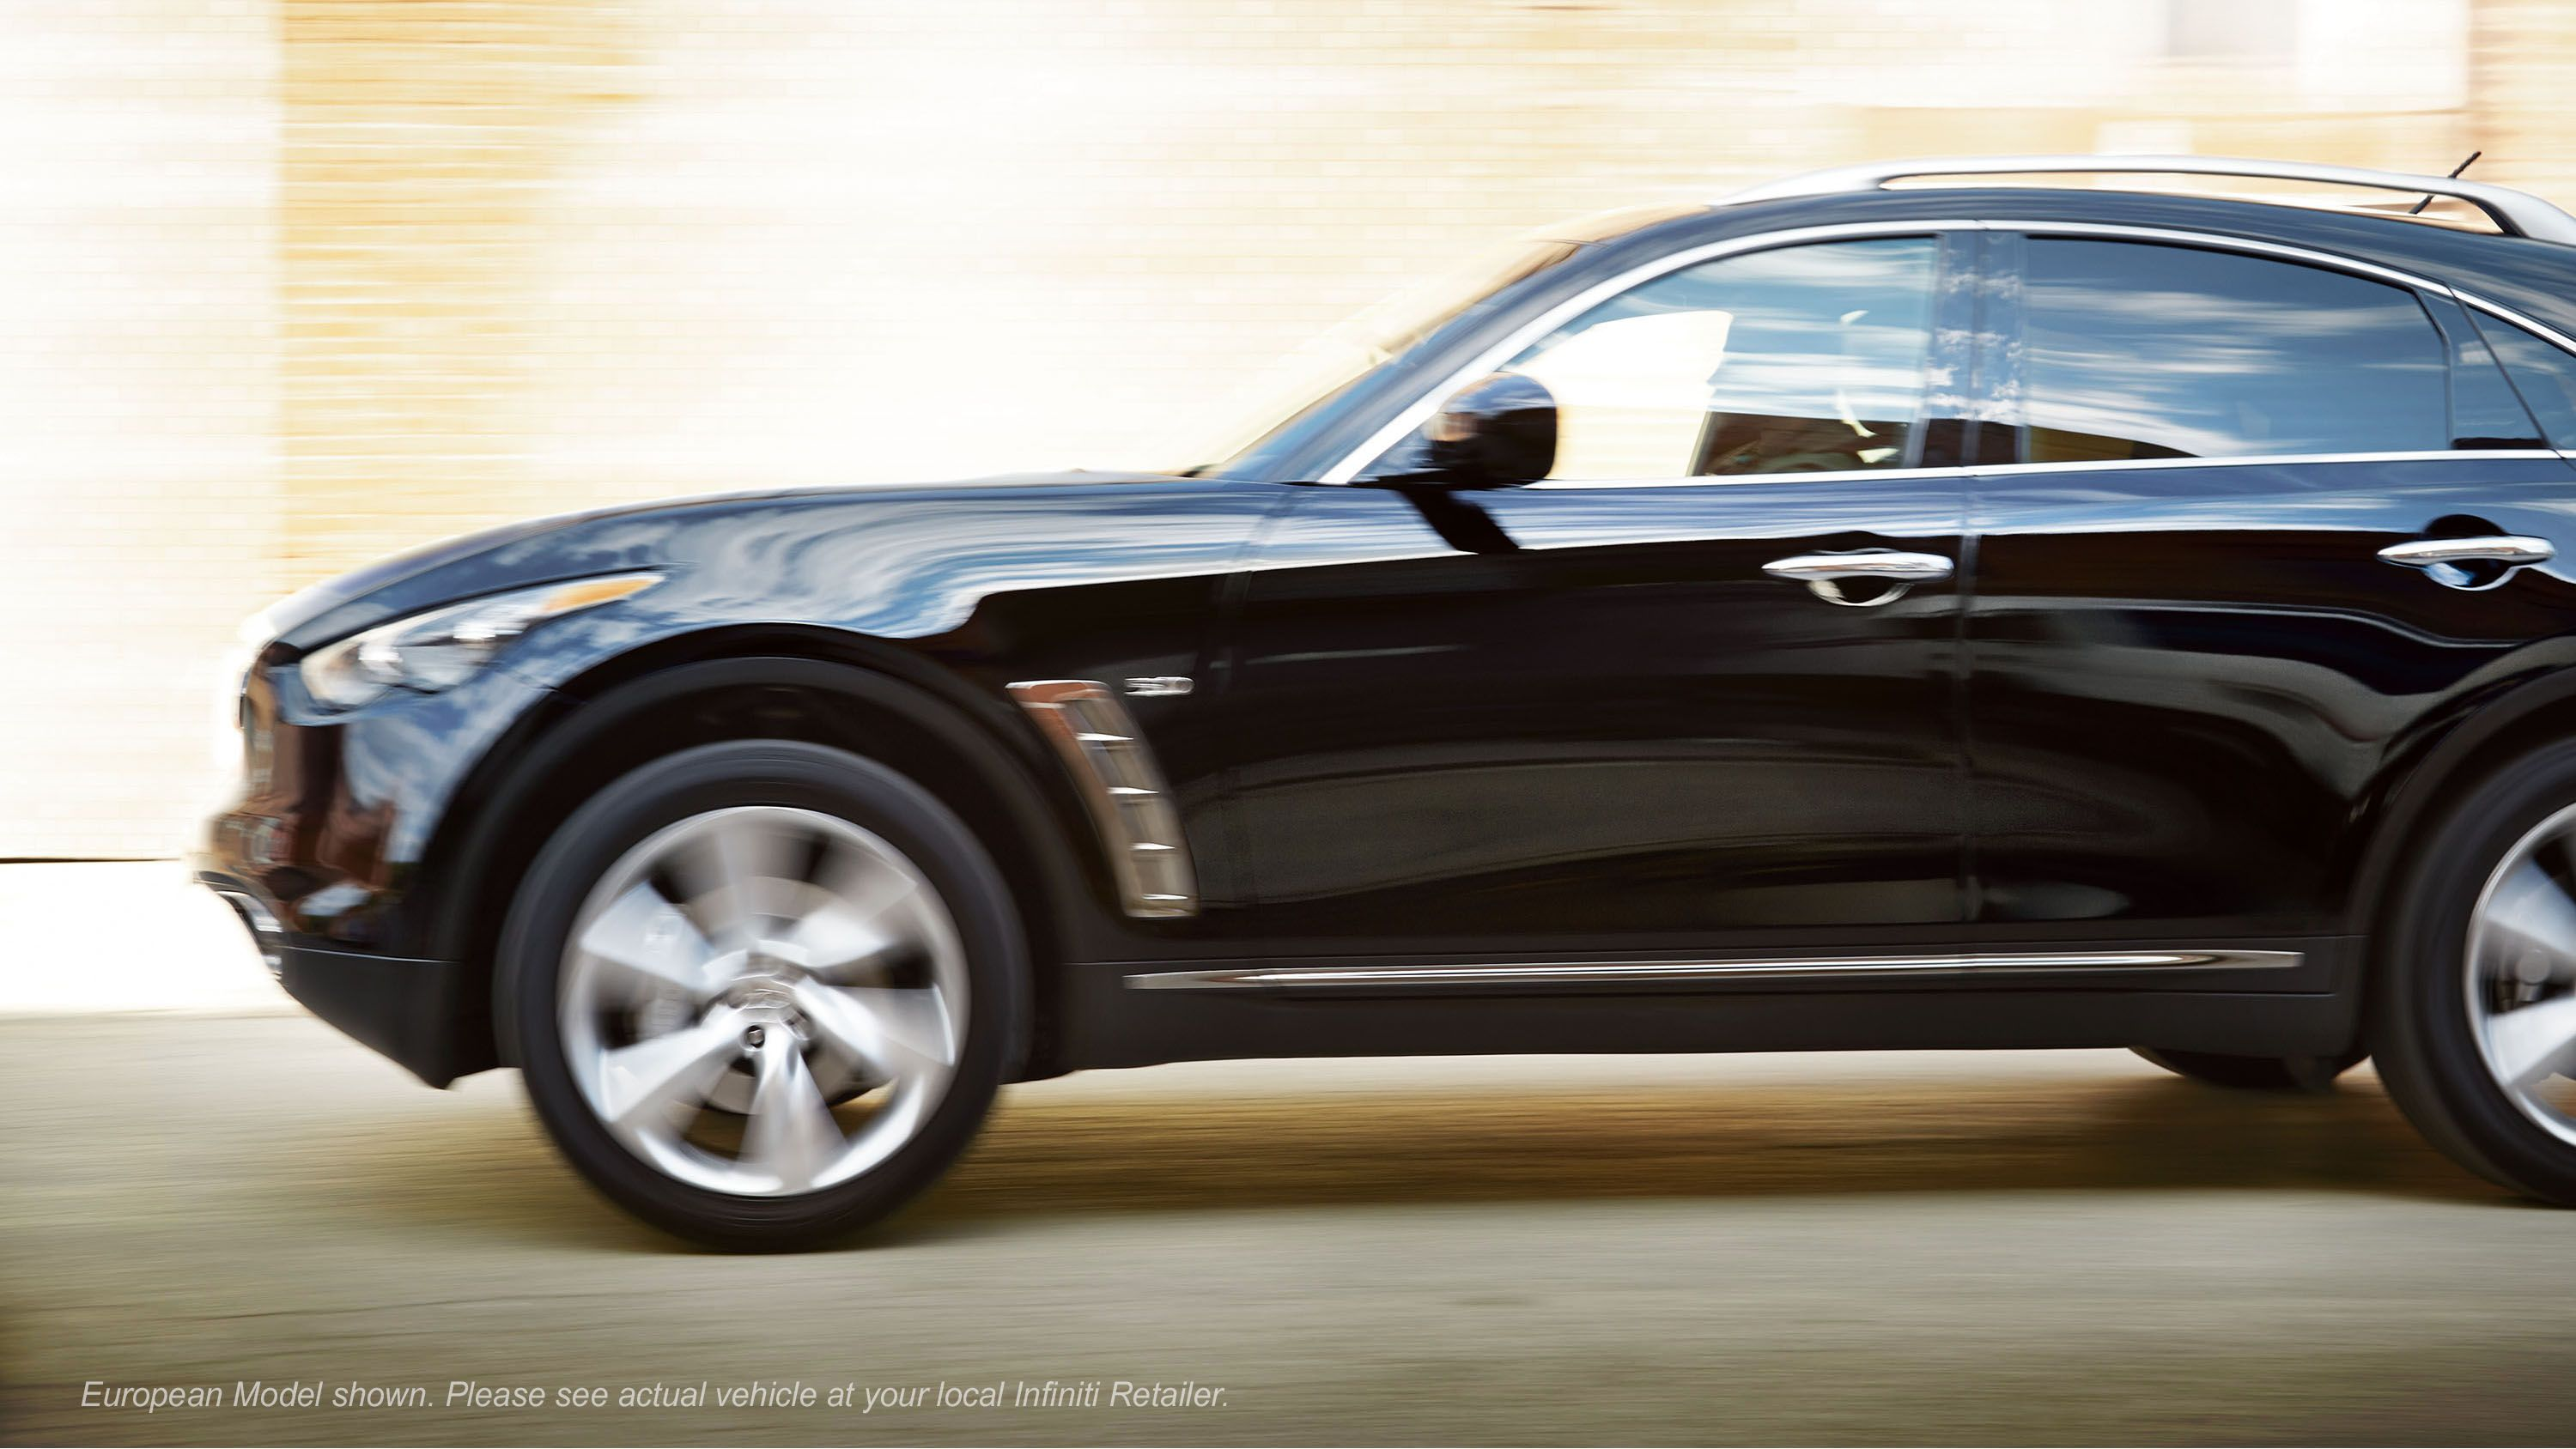 2015 infiniti qx70 luxury crossover driver 39 s side profile in black obsidian with side air. Black Bedroom Furniture Sets. Home Design Ideas